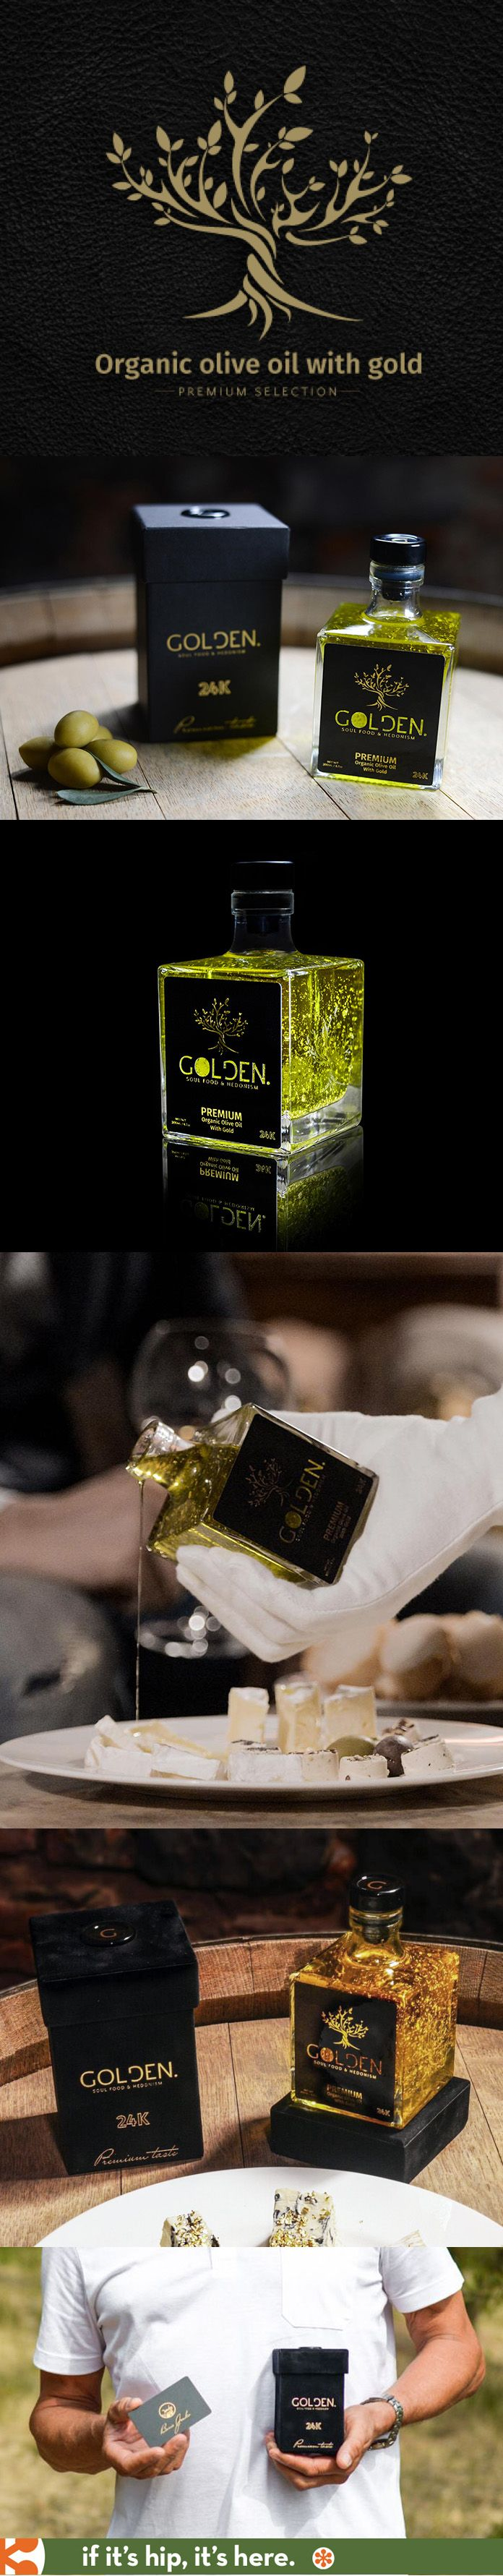 Organic olive oil with 24k gold flakes